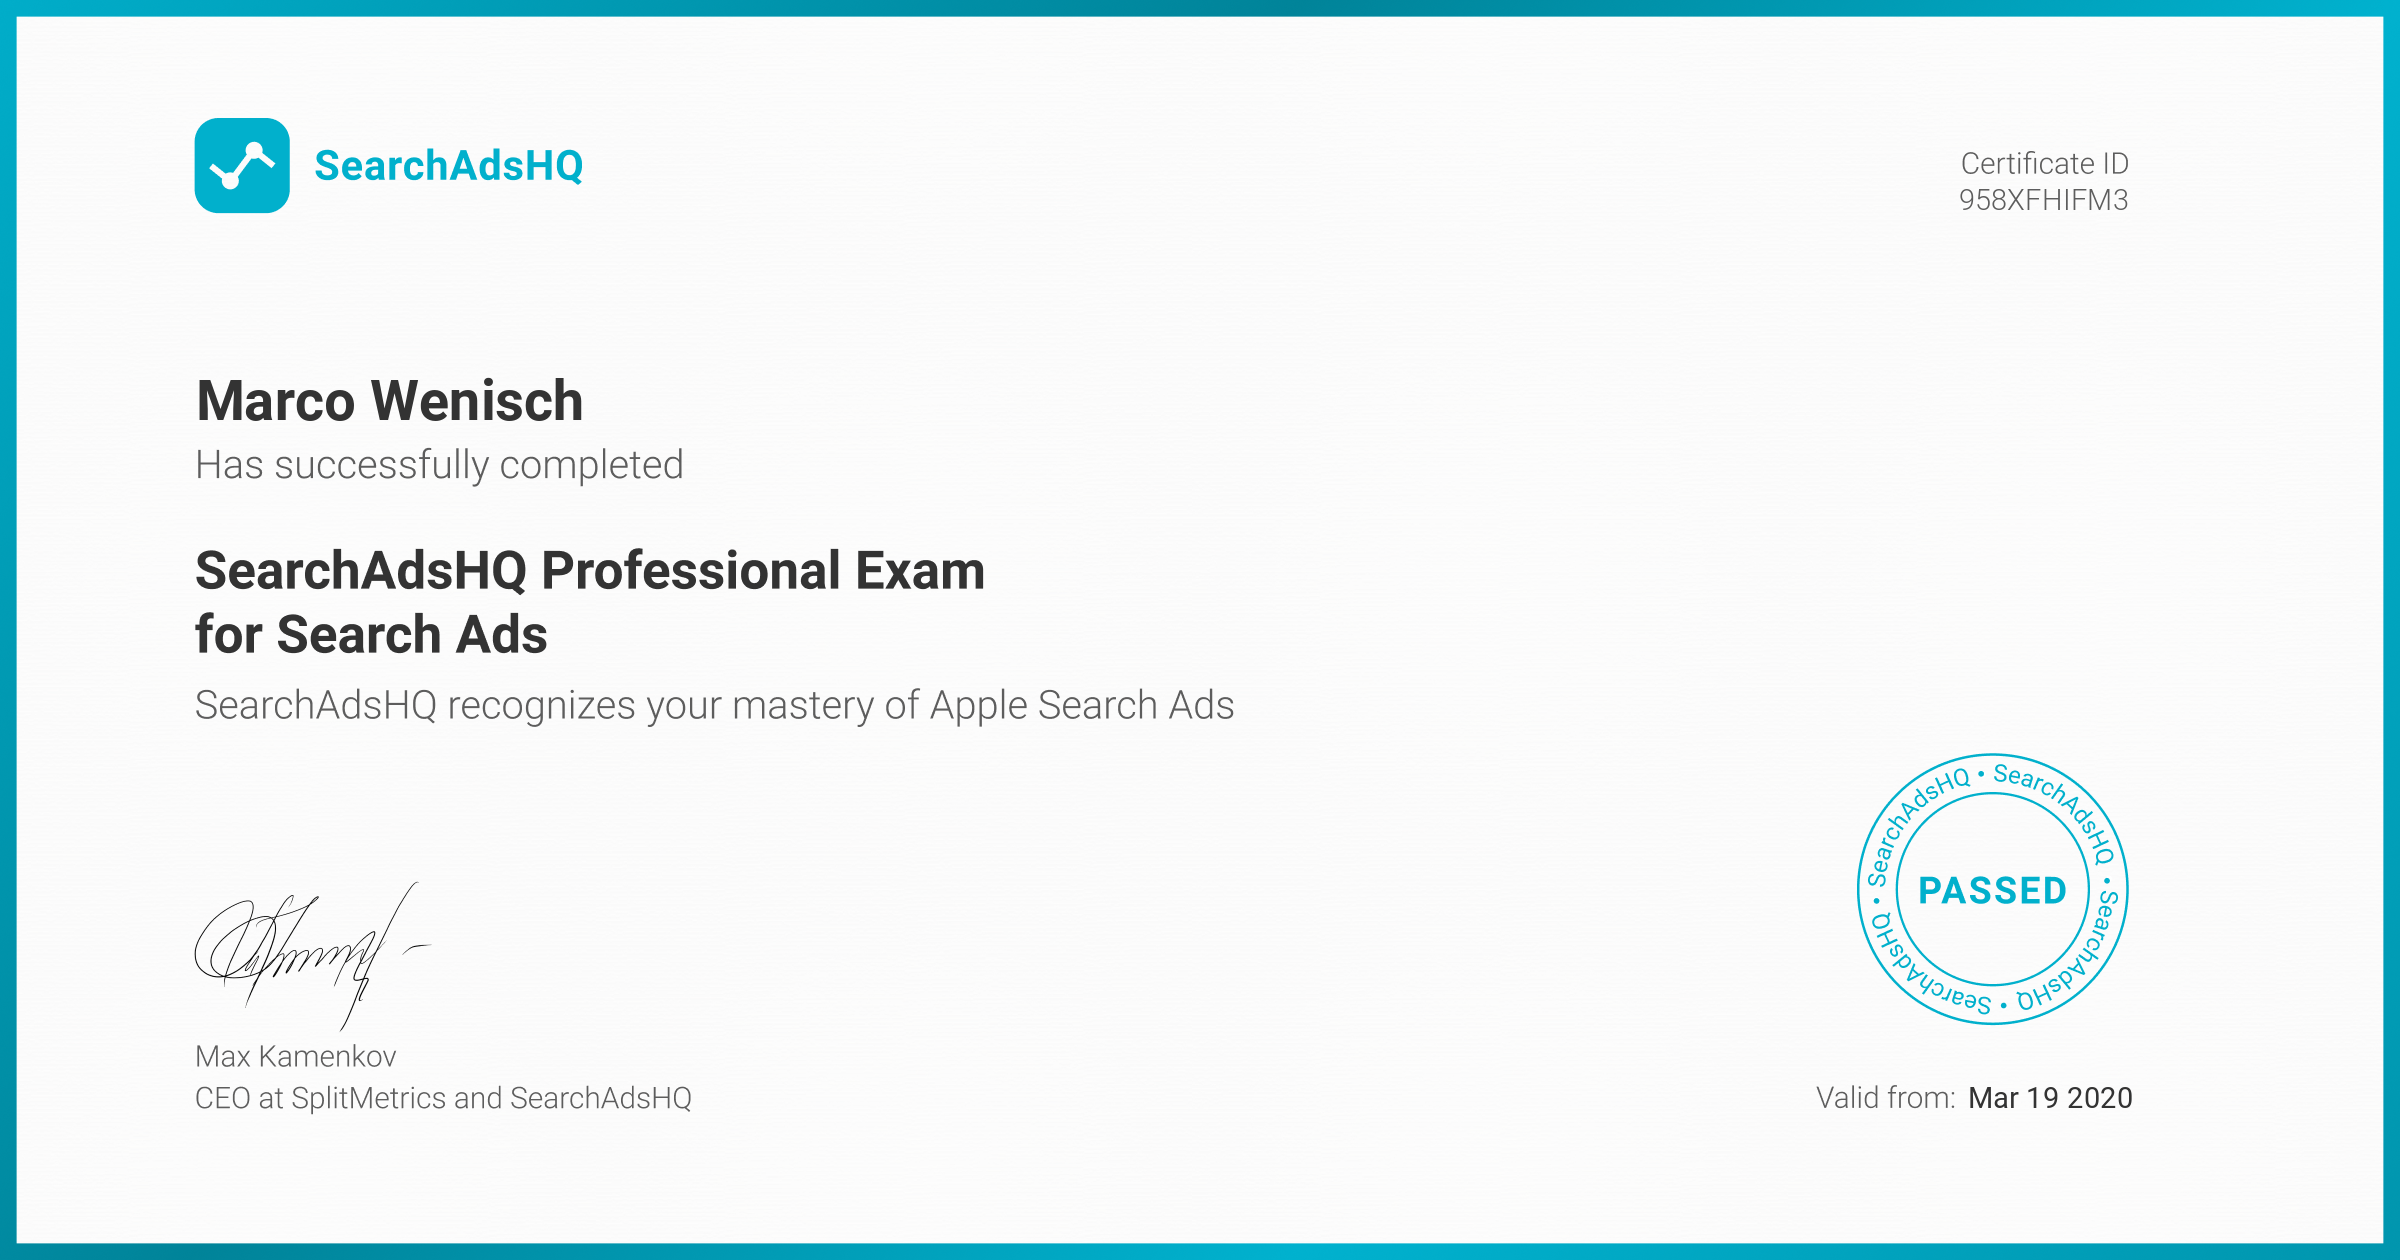 Certificate for Marco Wenisch | SearchAdsHQ Professional Exam for Search Ads